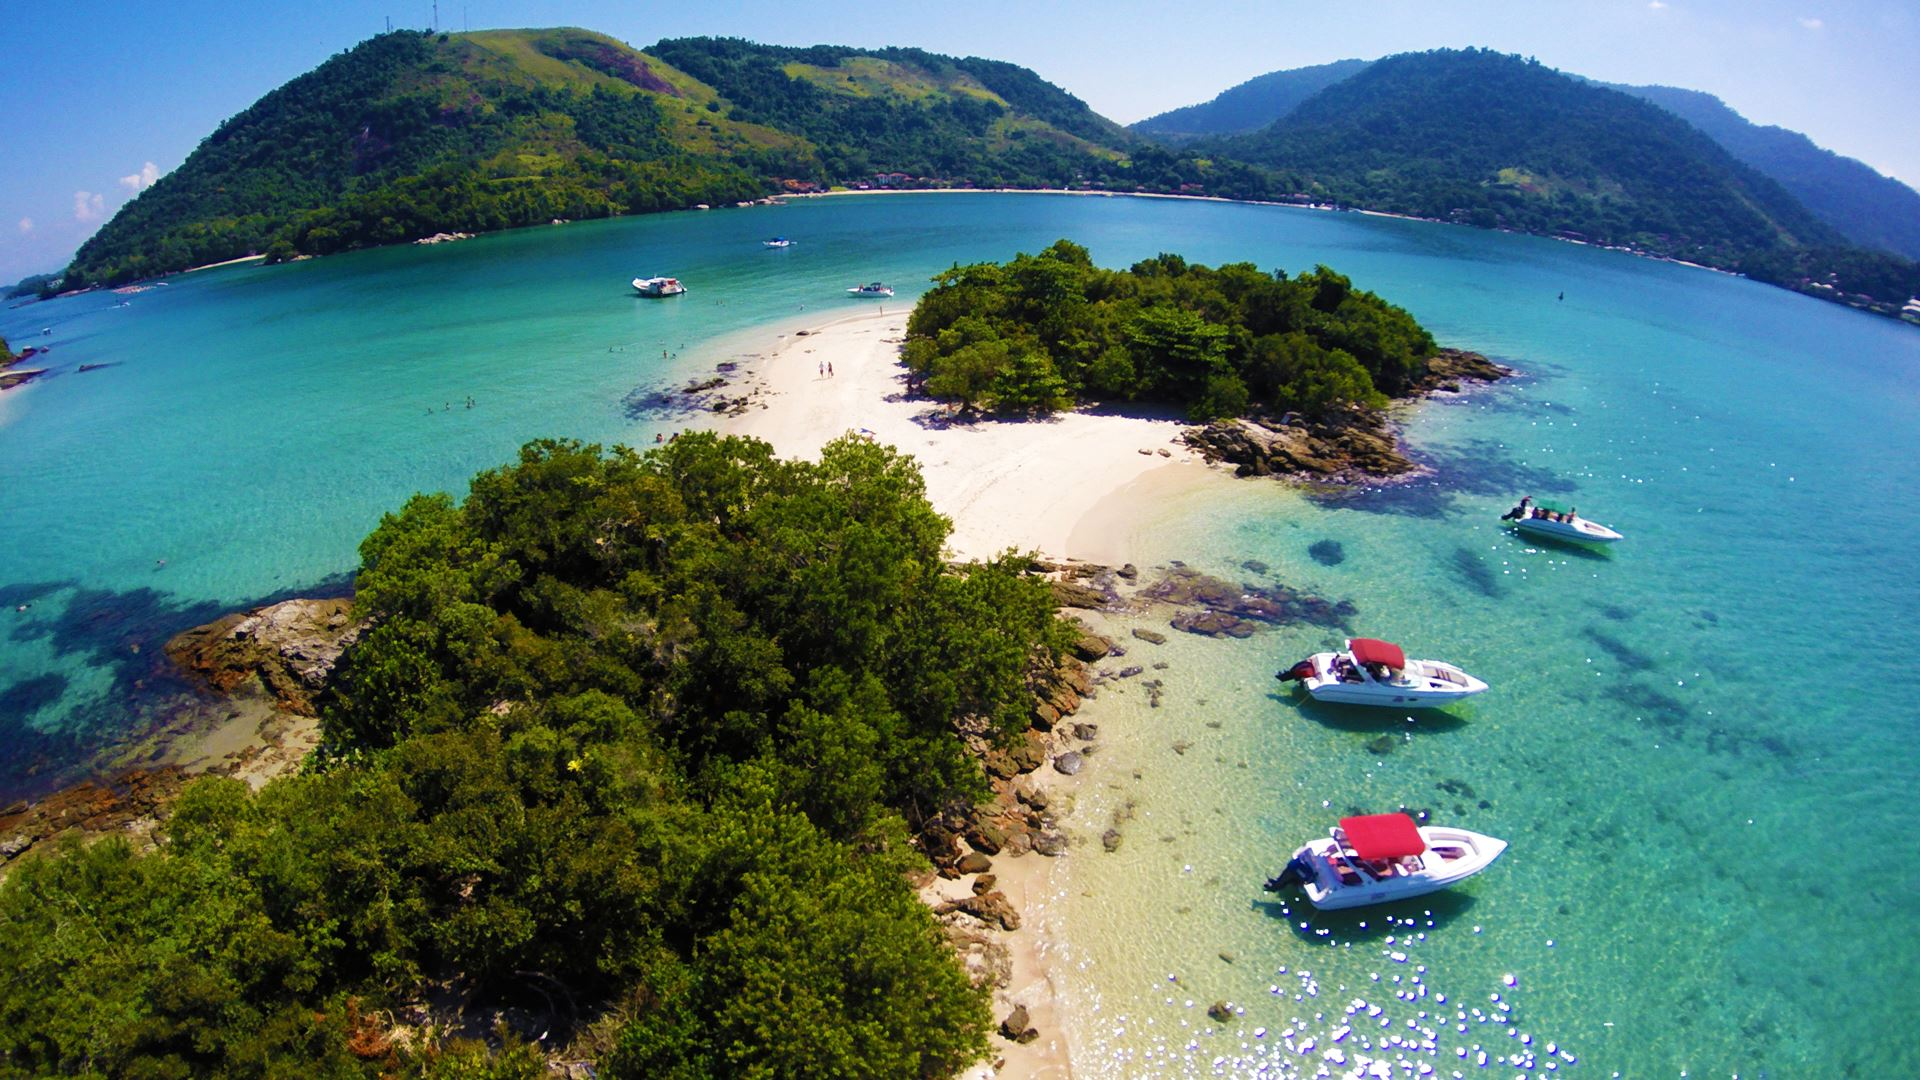 Tour To The Paradisiac Islands Of Angra